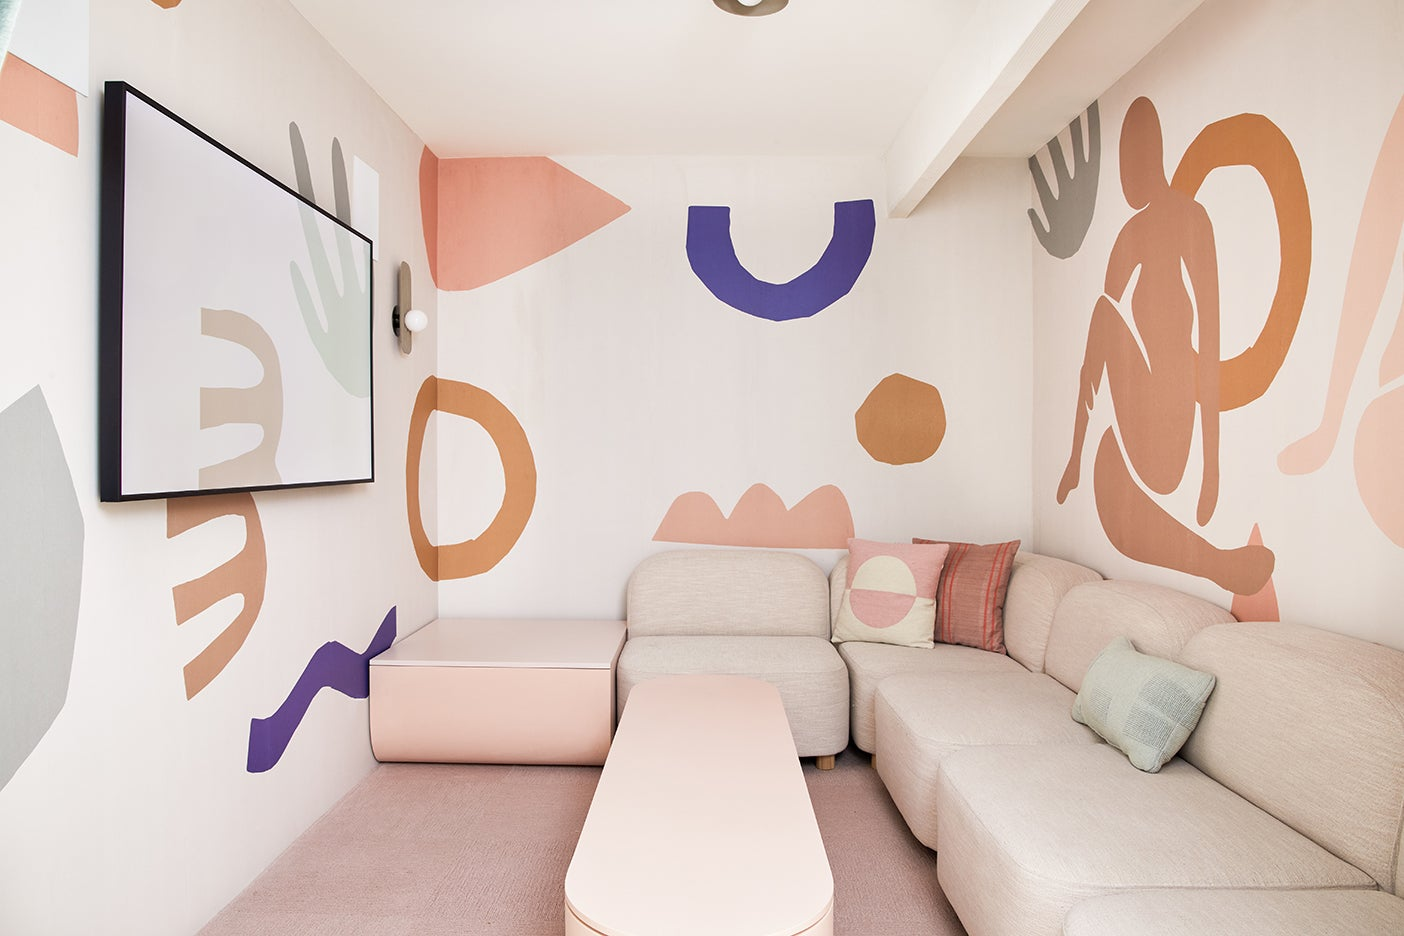 pink shapes on walls